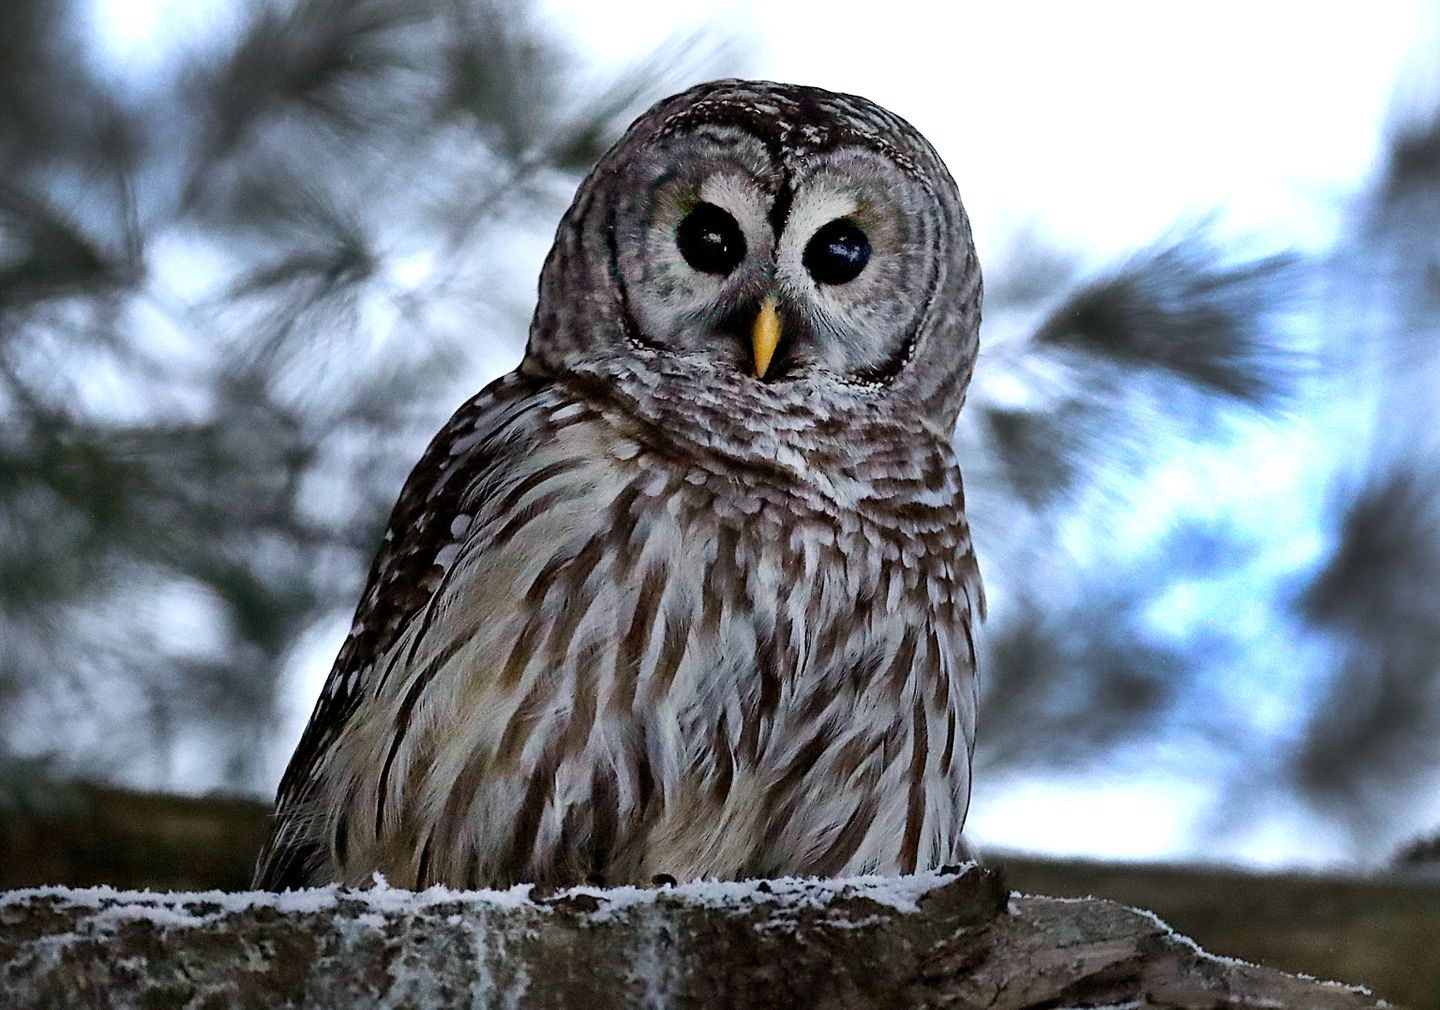 Barred Owl sitting on tree branch